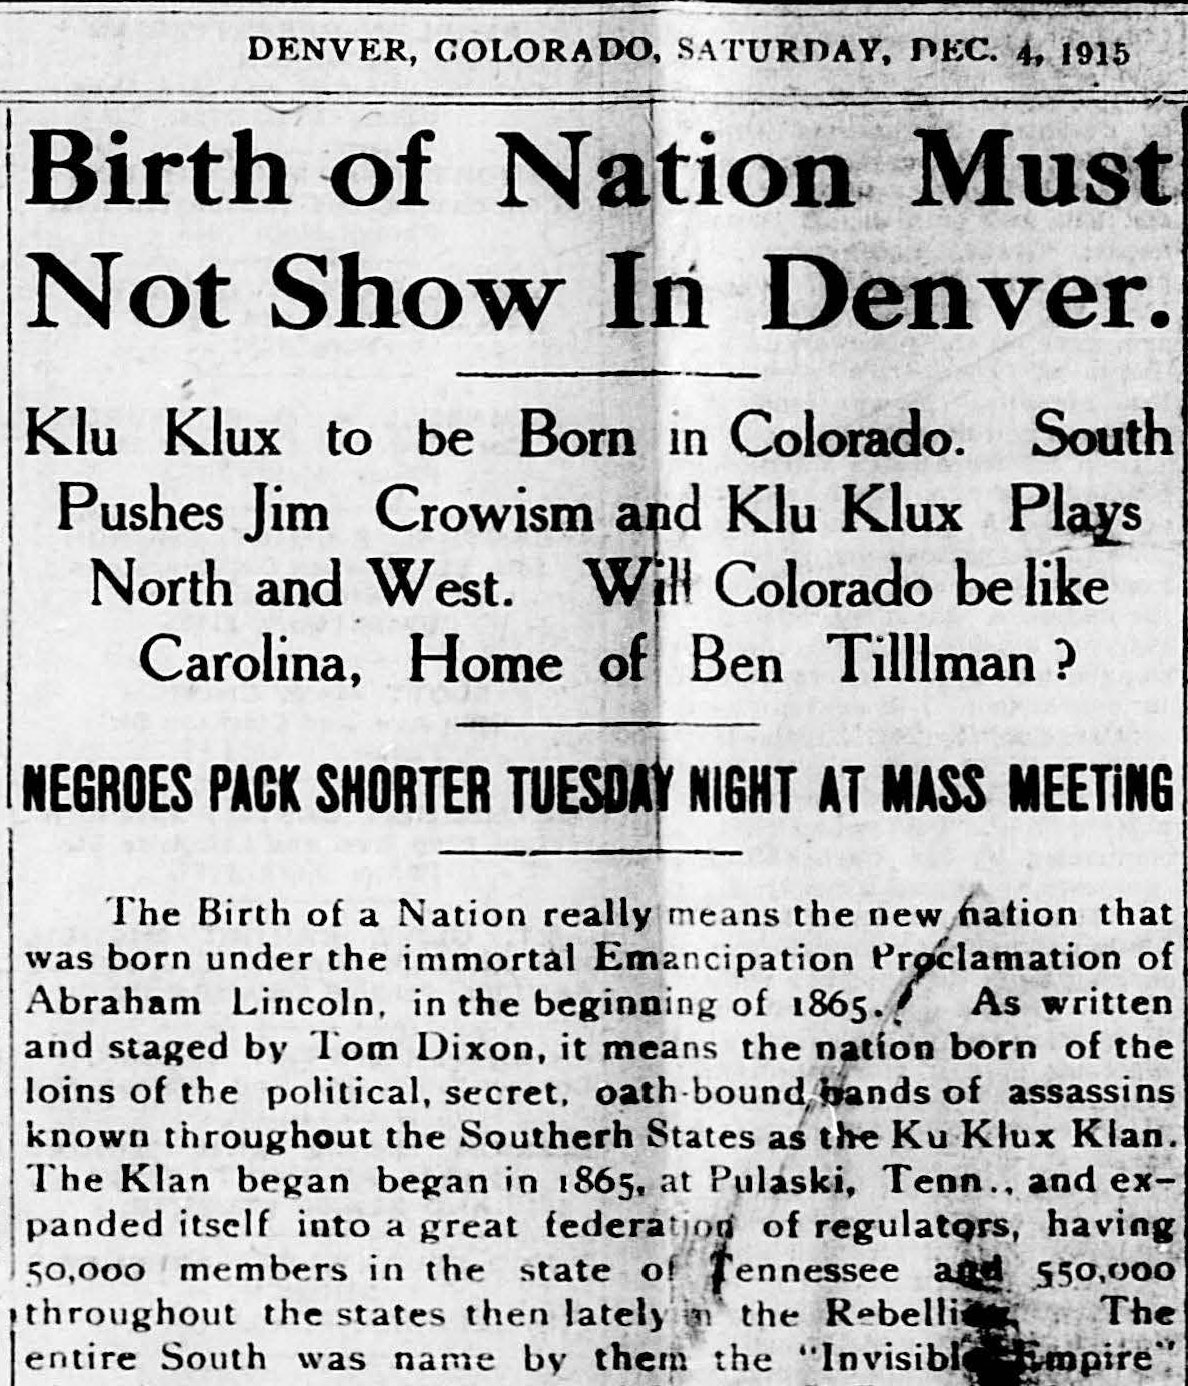 news clipping about Birth of a Nation from Denver Star